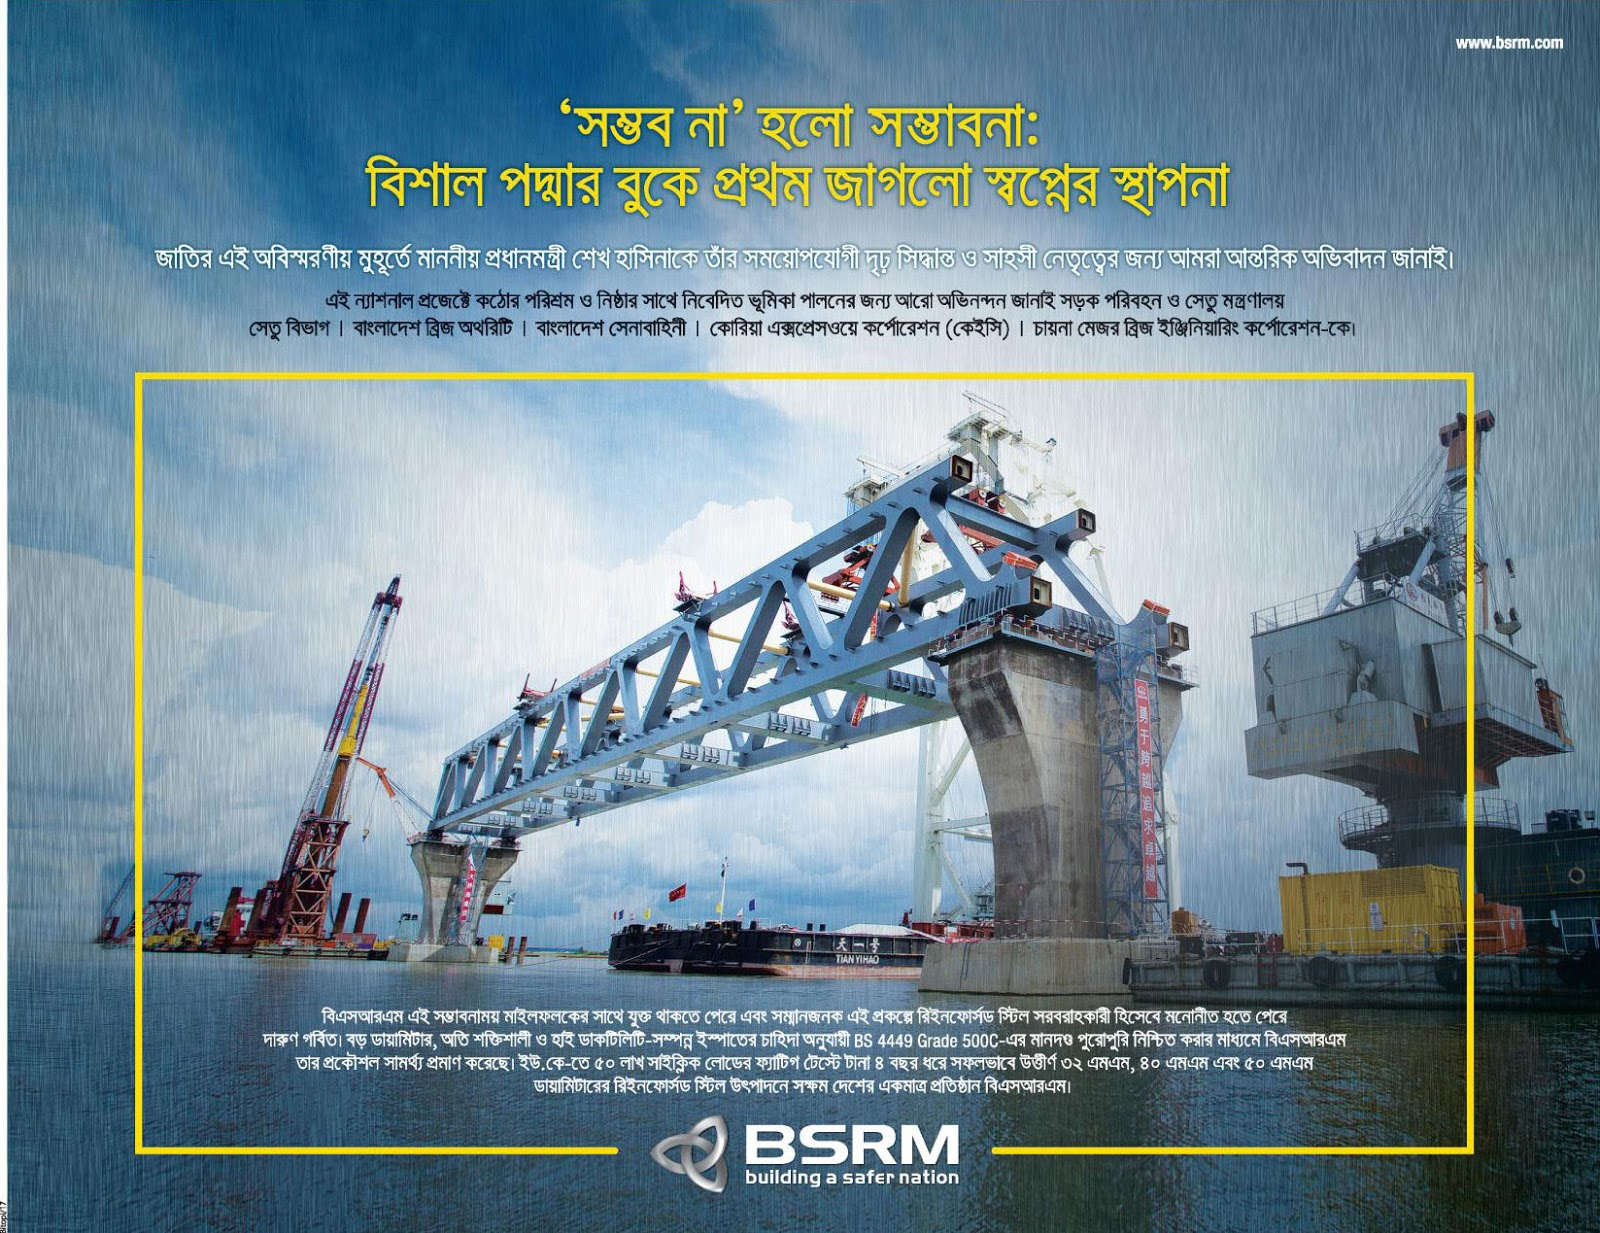 prospectus of bsrm steels limited Prospectus of bsrm steels limited bsrm steels limited filebsrm steels limited will be held on wednesday, march 30 investment corporation of bangladesh -  ltd bsrm limited bsrm steels limited eastern cables ltd golden son ltd 10,00400 5,51000 1,71.